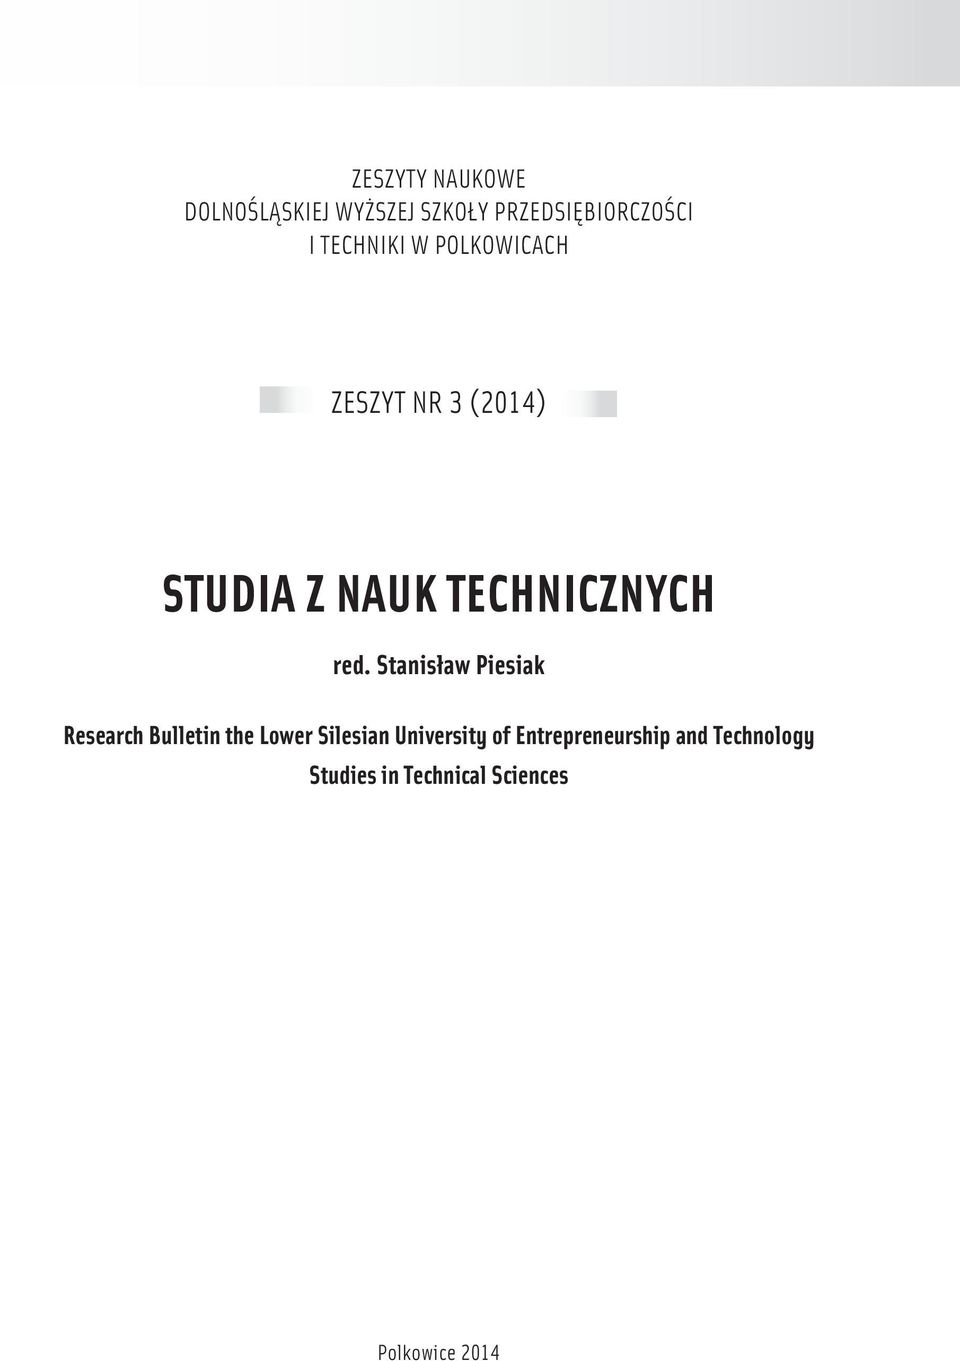 red. Stanisław Piesiak Research Bulletin the Lower Silesian University